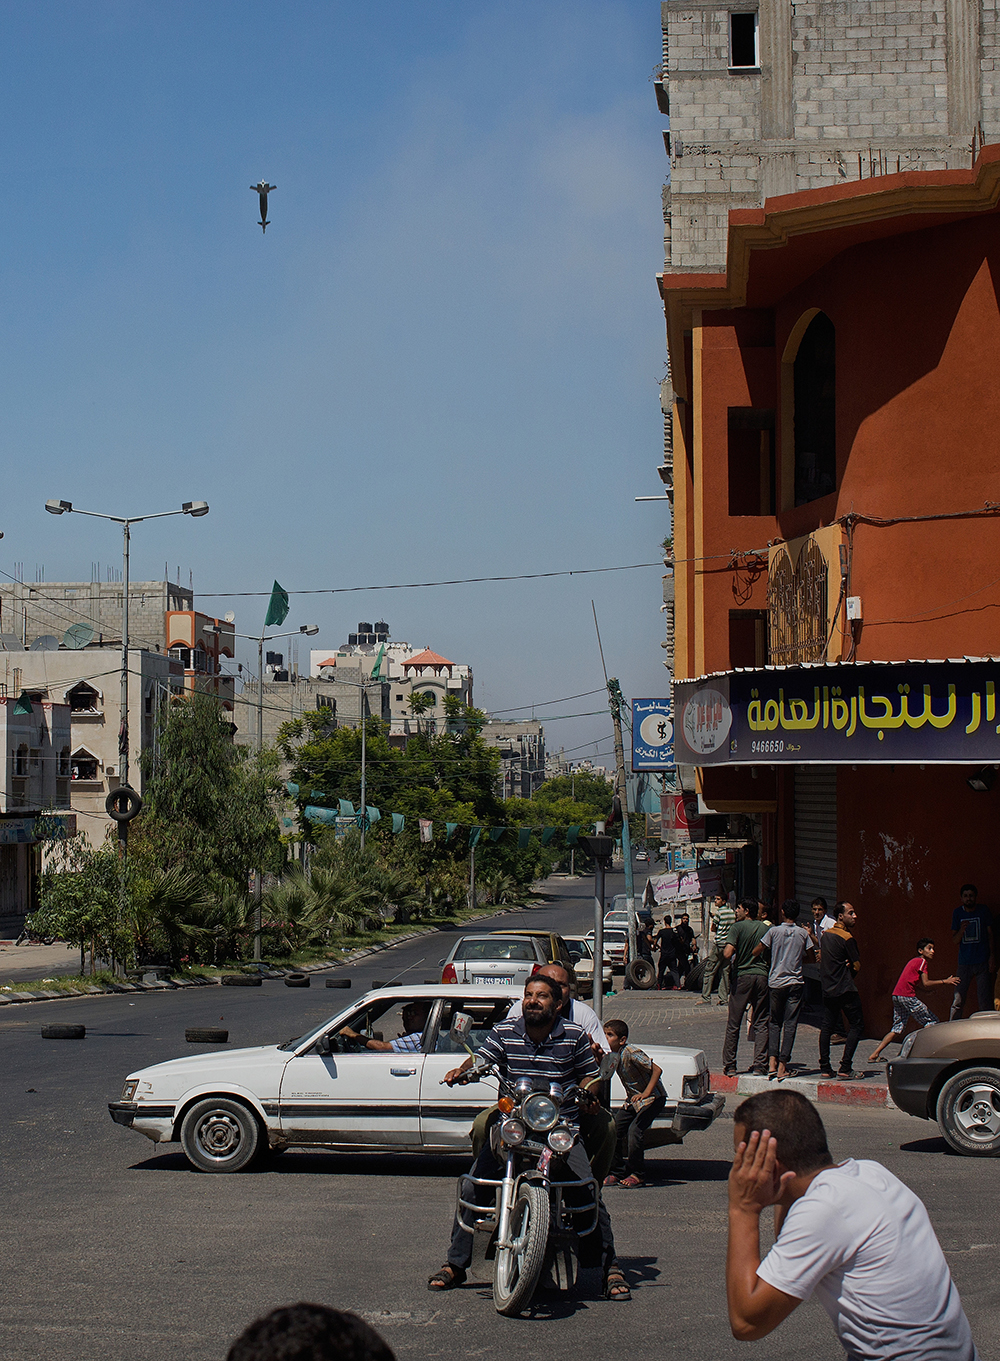 Precision munitions are used to level buildings in Gaza.